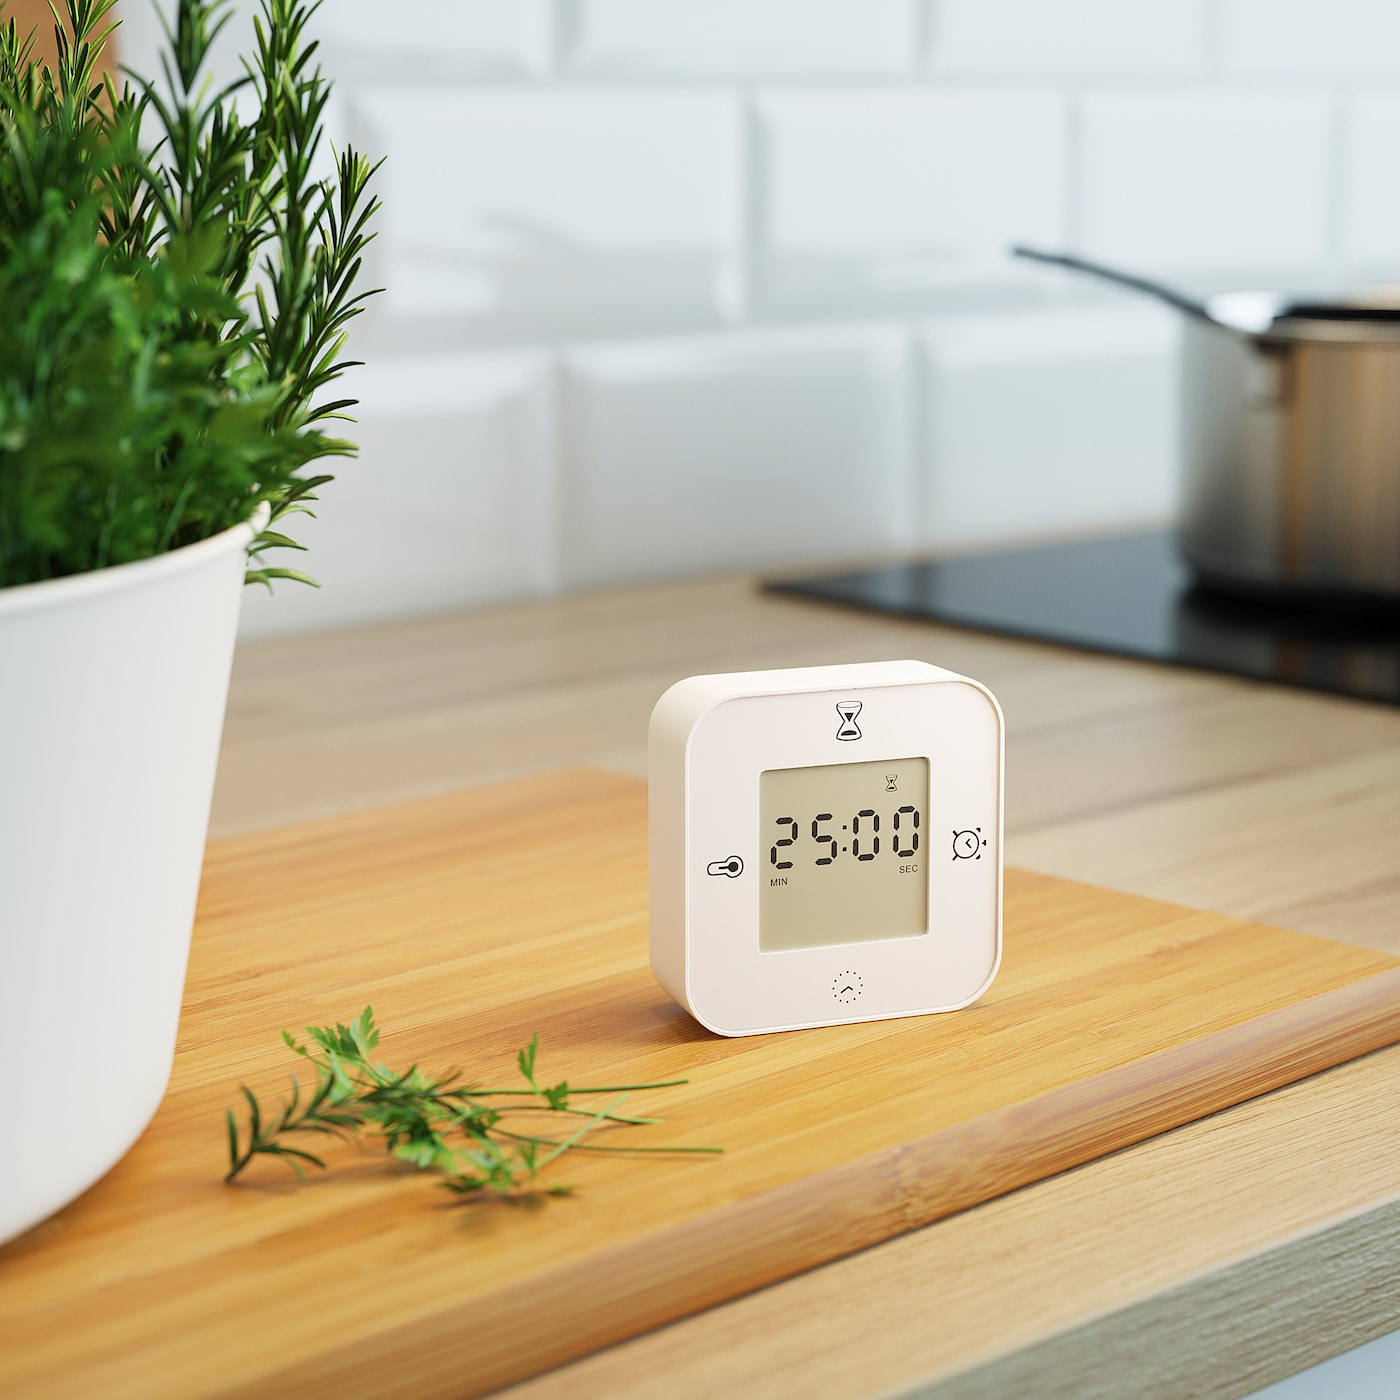 Timer Kitchen Bed Thermometer IKEA KLOCKIS // LOTTORP 4 Functions Alarm Clock